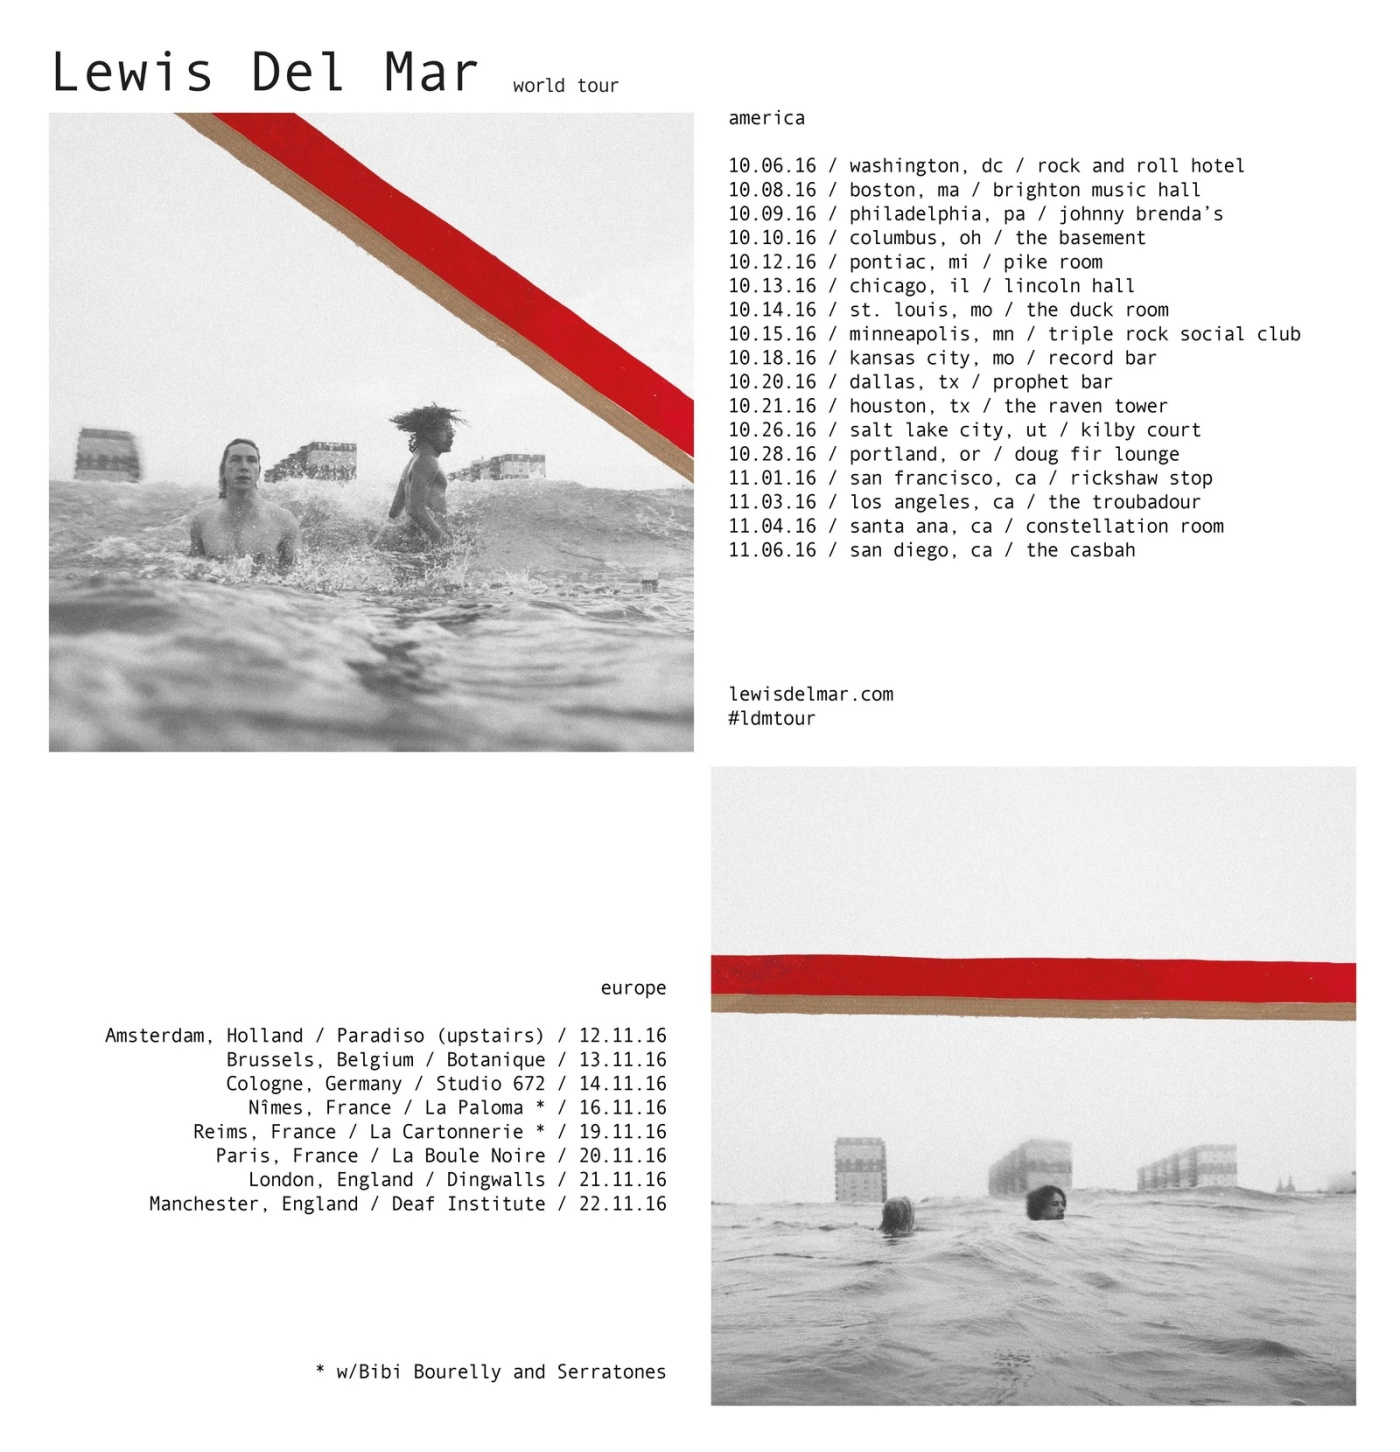 Lewis_del_mar_tour_dates.jpg